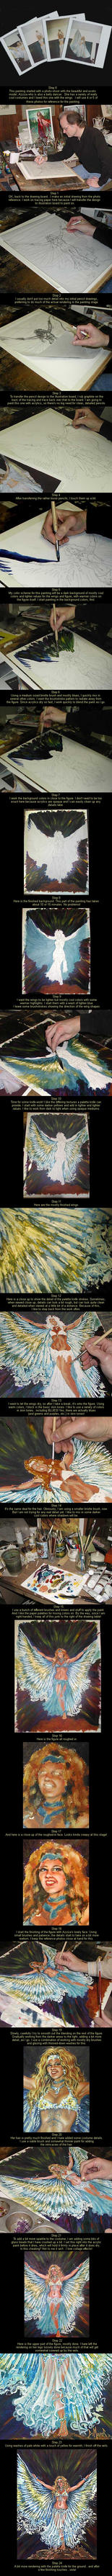 Acrylic painting tutorial by kimdemulder